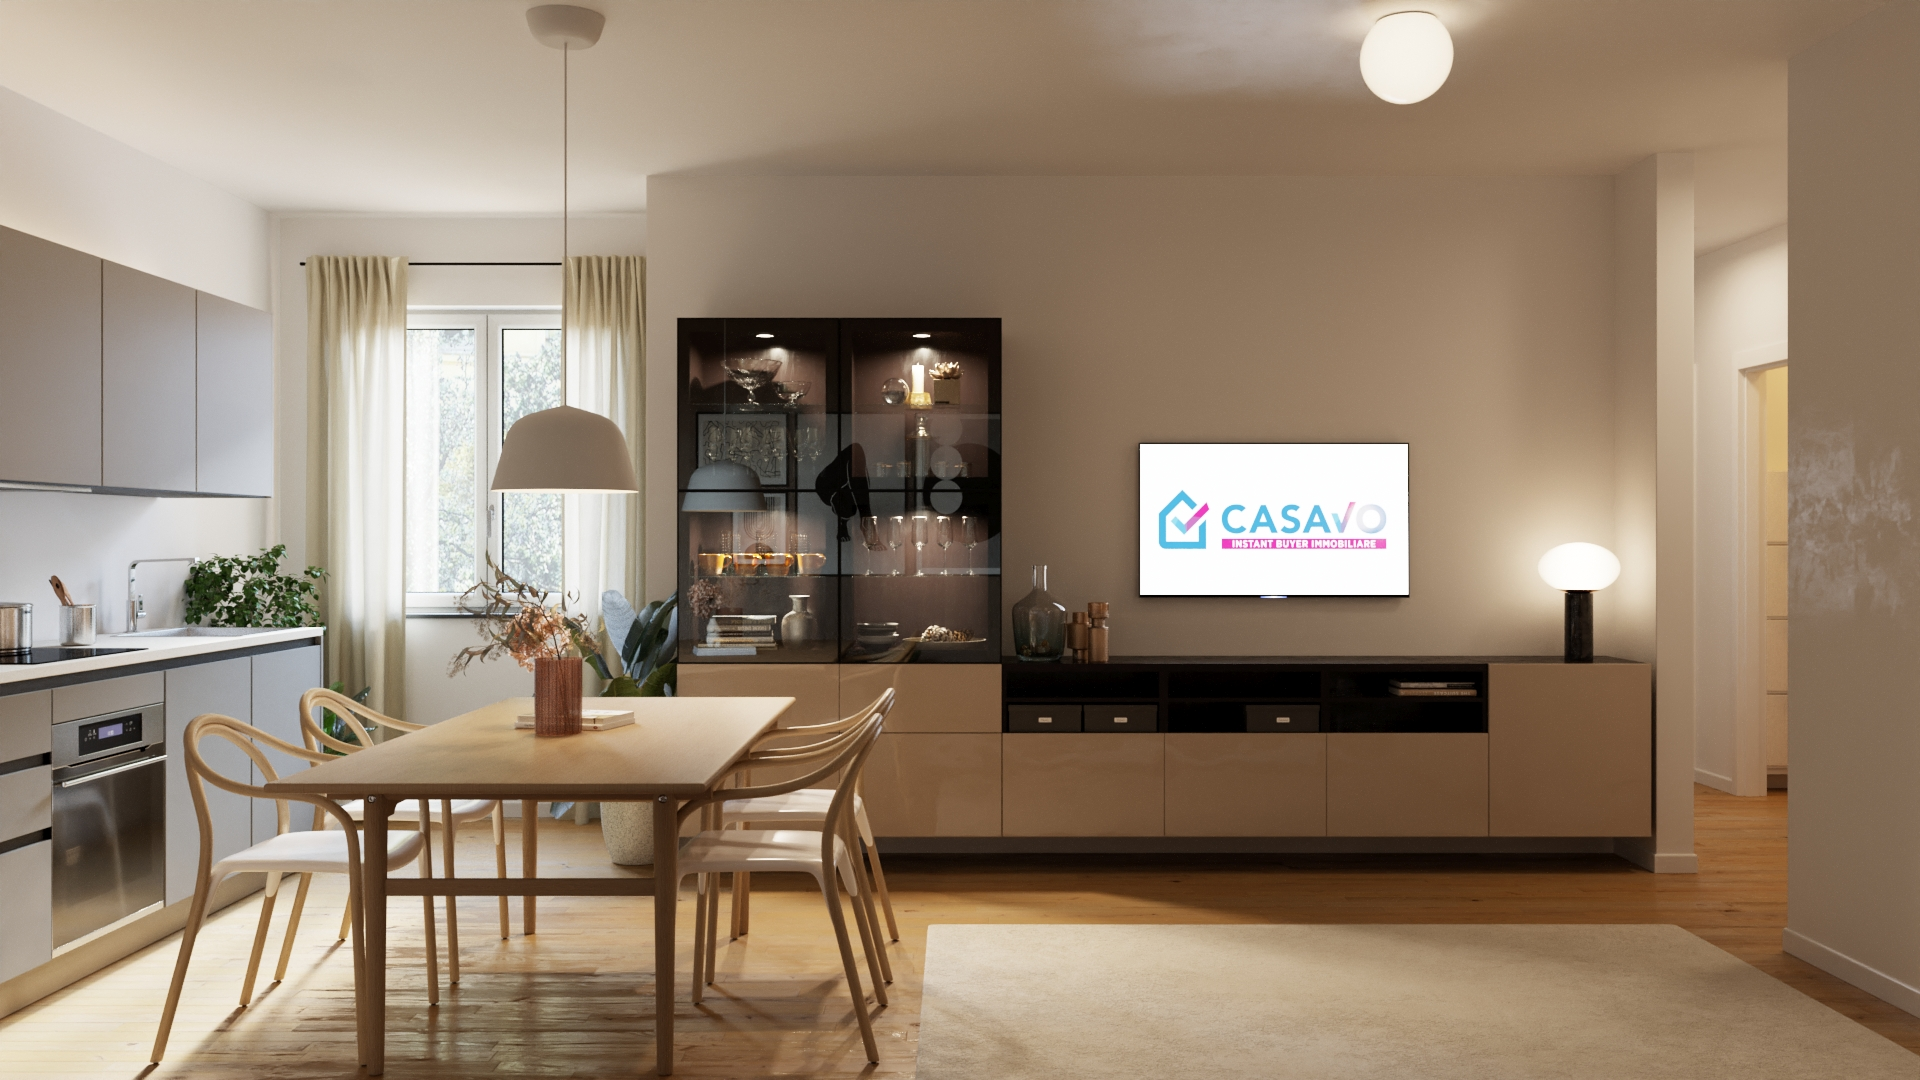 Two-bedroom Apartment of 79m² in Via Giambologna